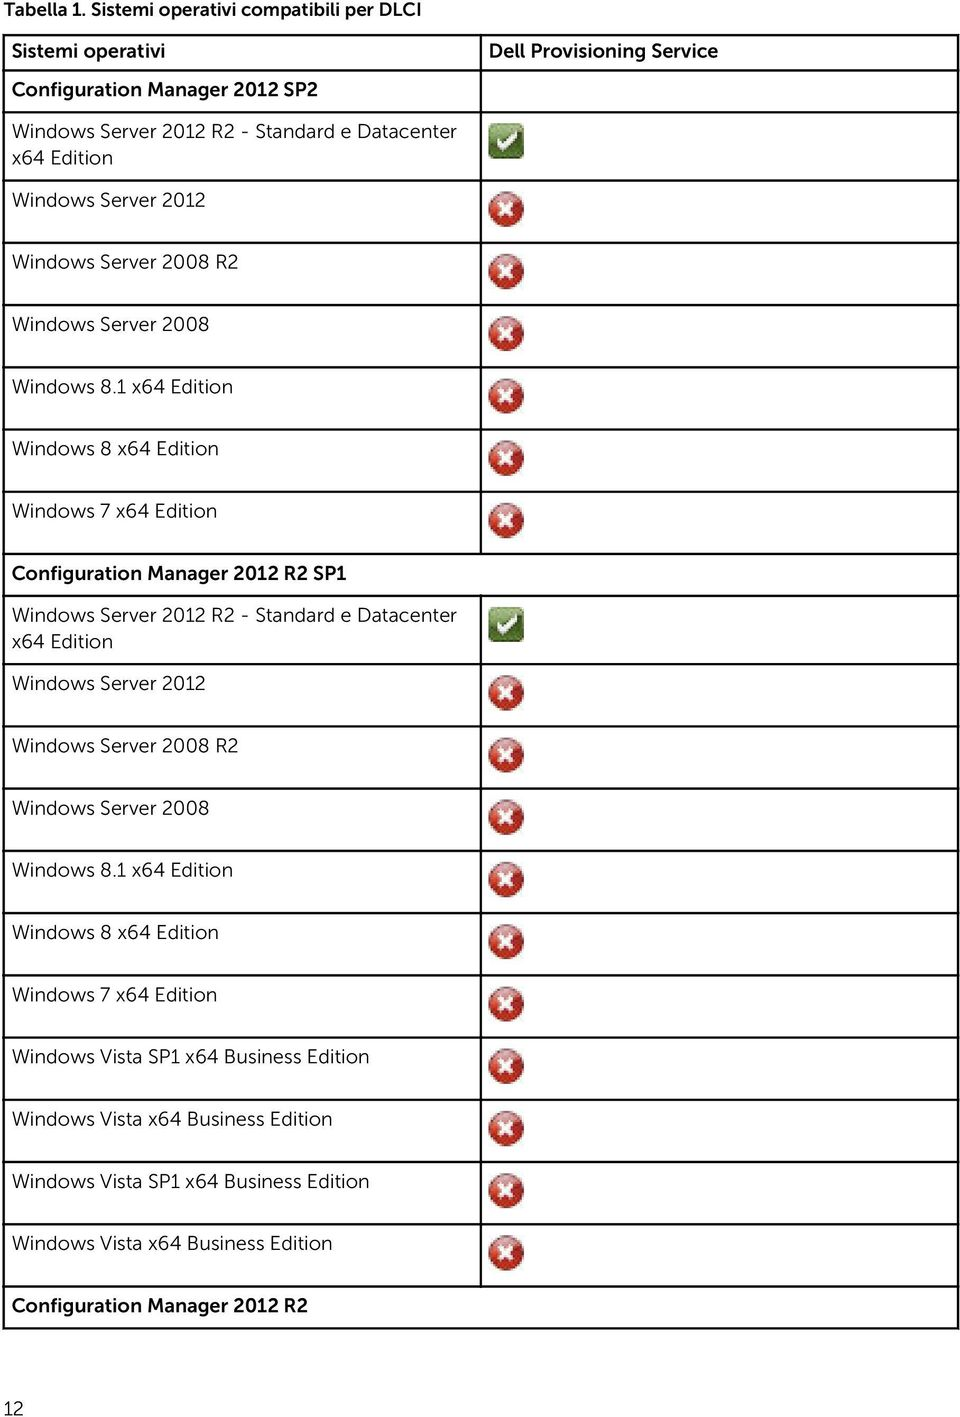 Windows Server 2012 Windows Server 2008 R2 Windows Server 2008 Windows 8.